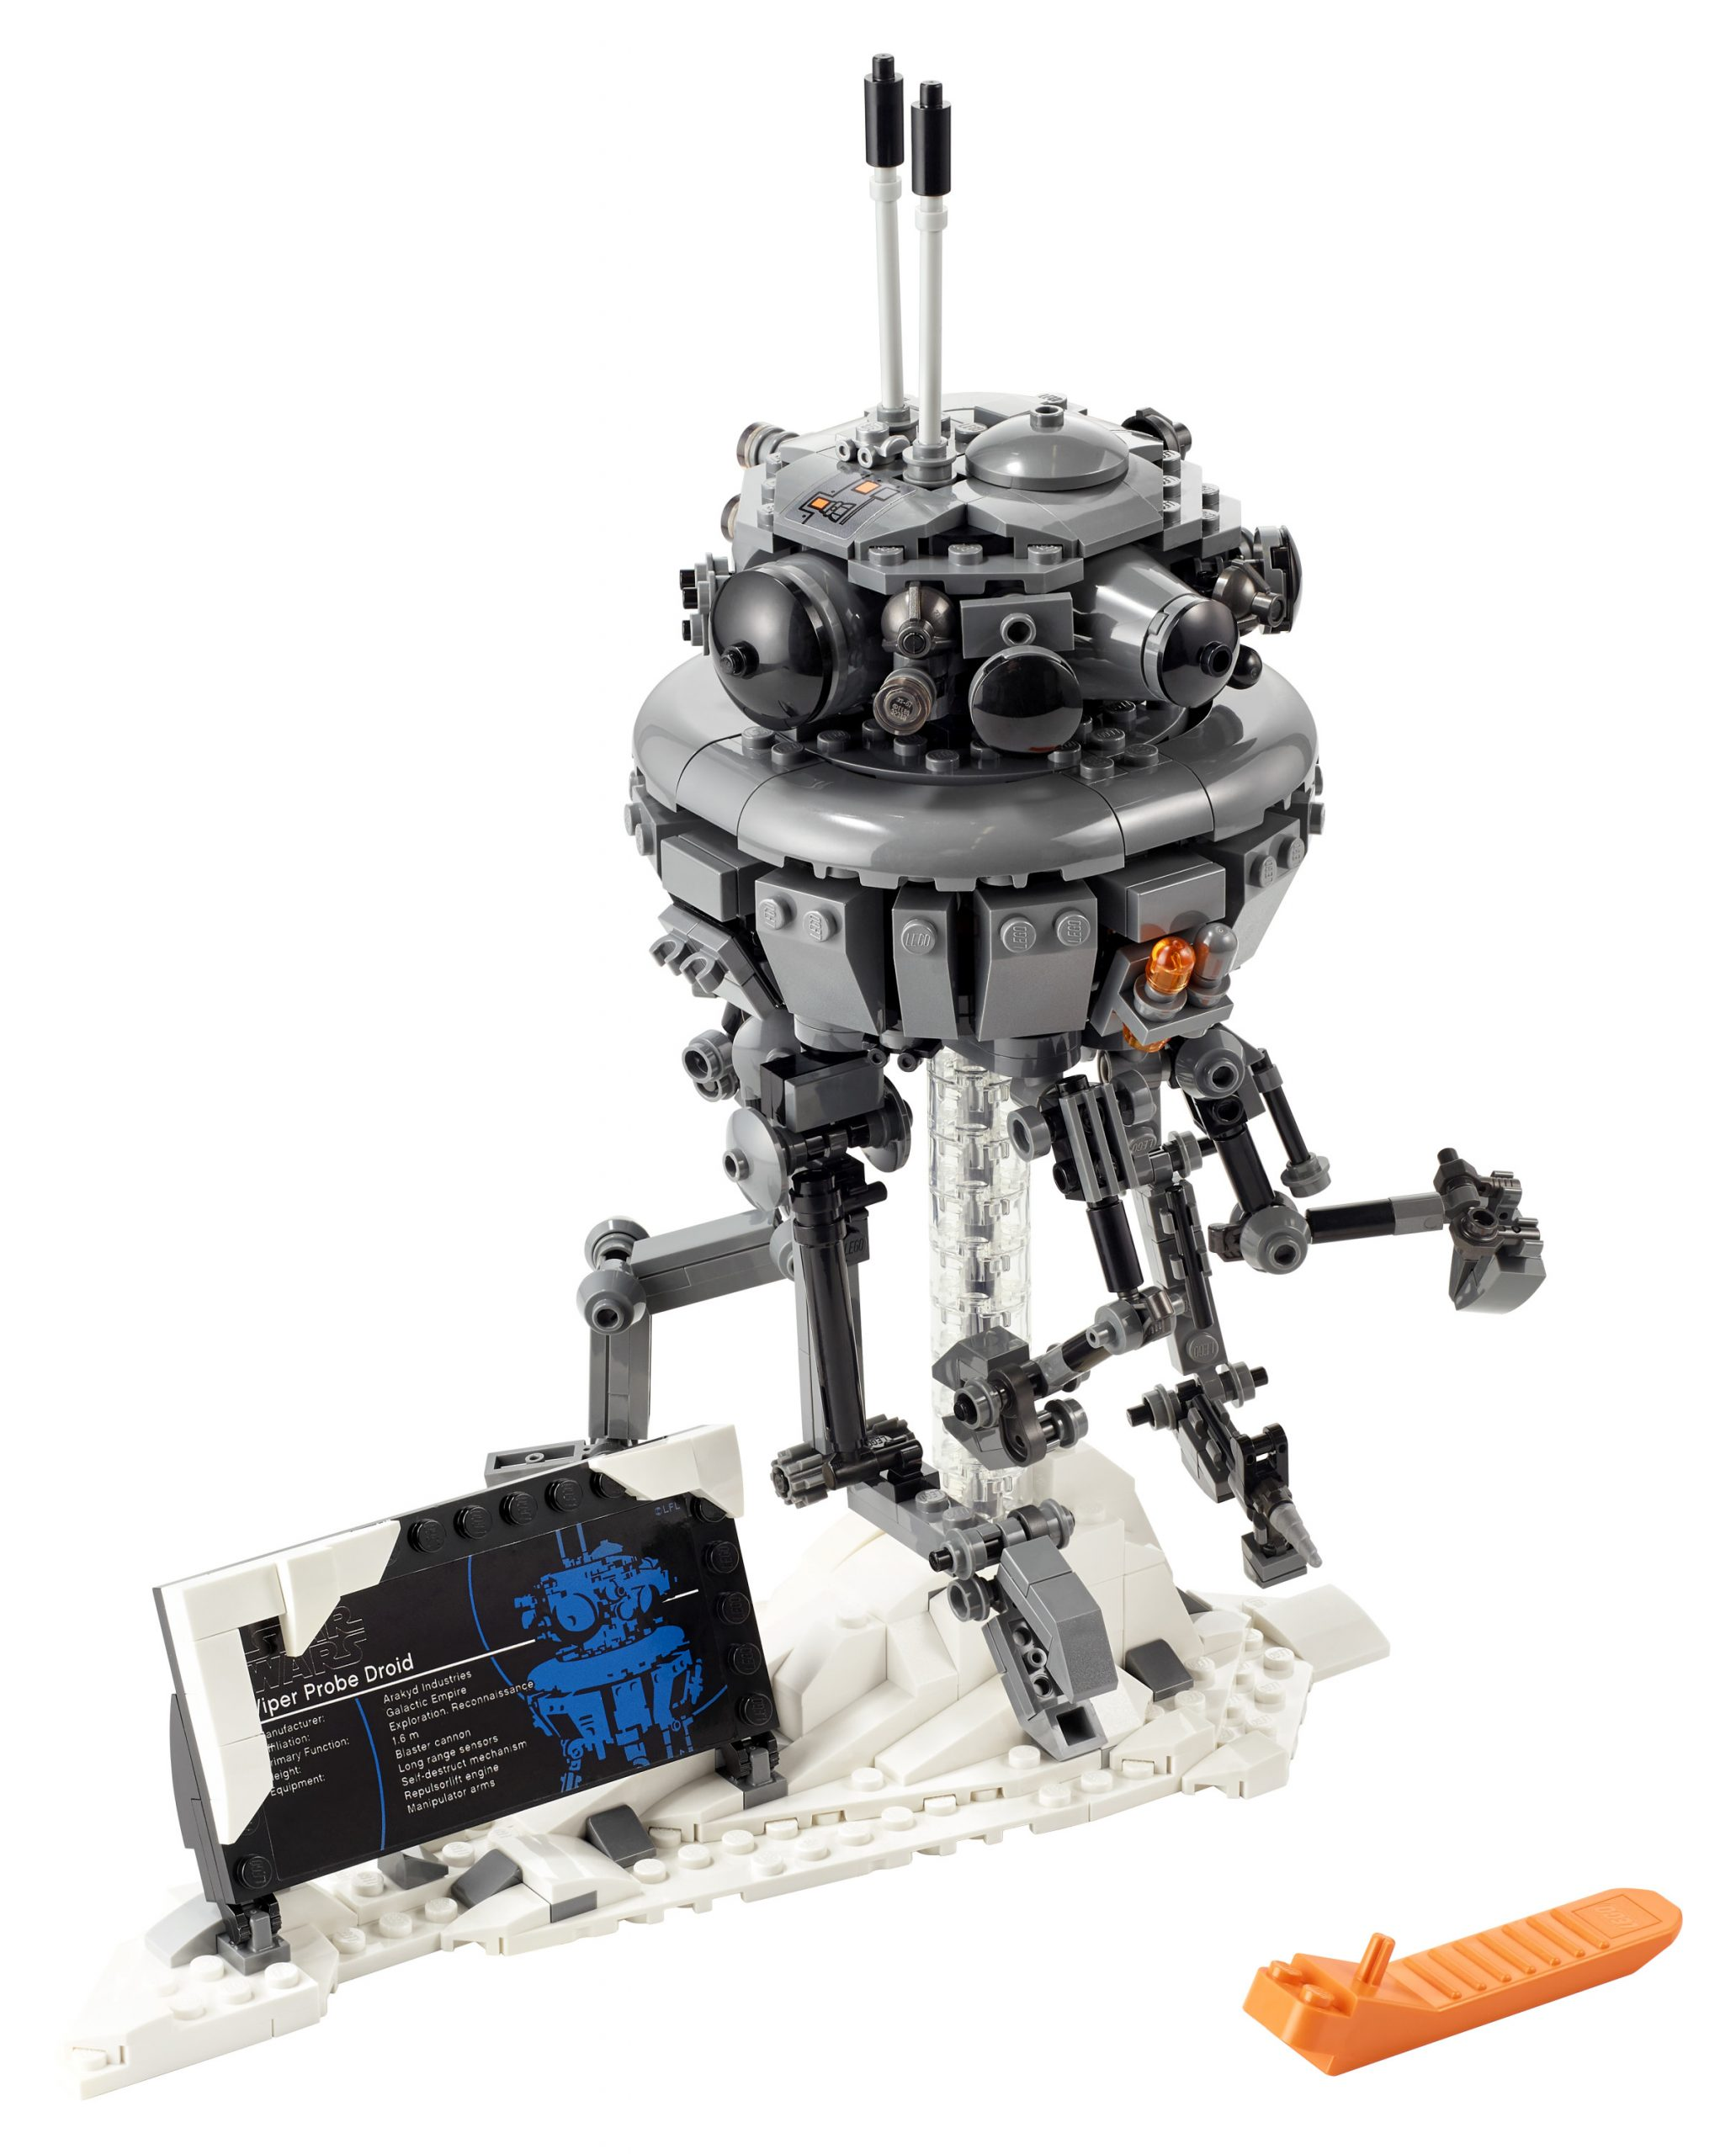 lego-star-wars-75306-imperial-probe-droid-3-scaled